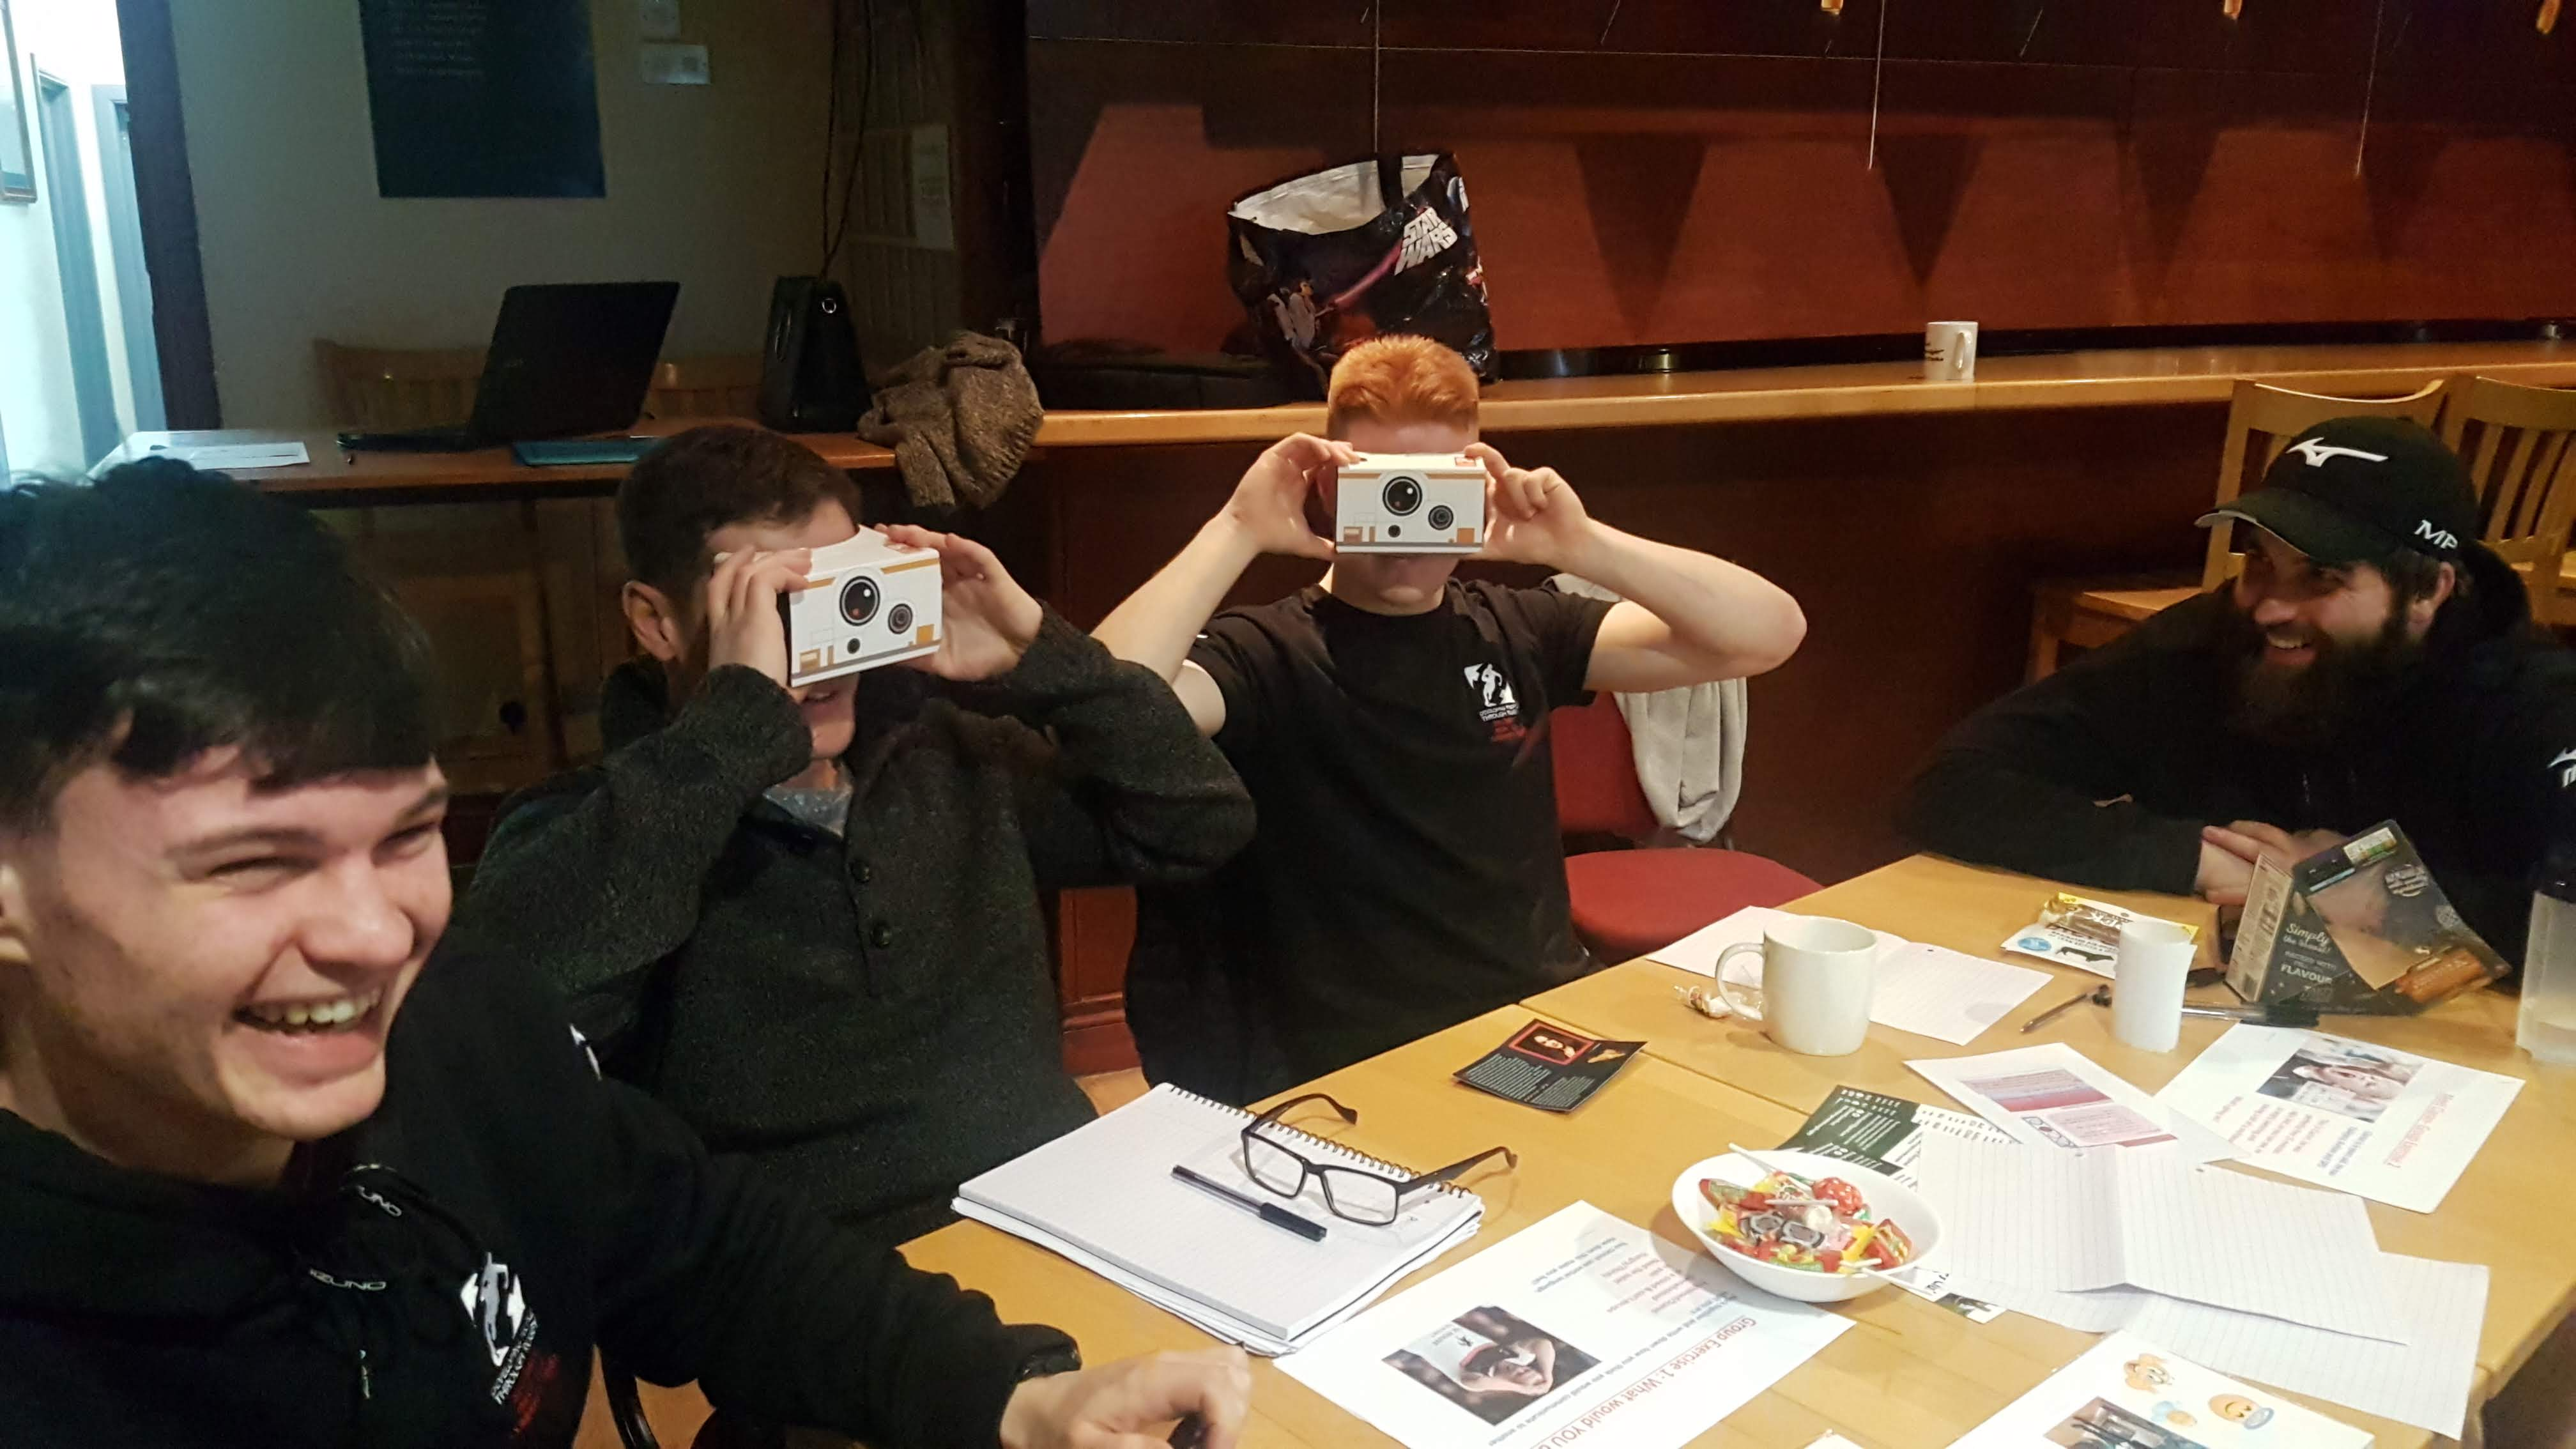 Virtual Reality was a hit!